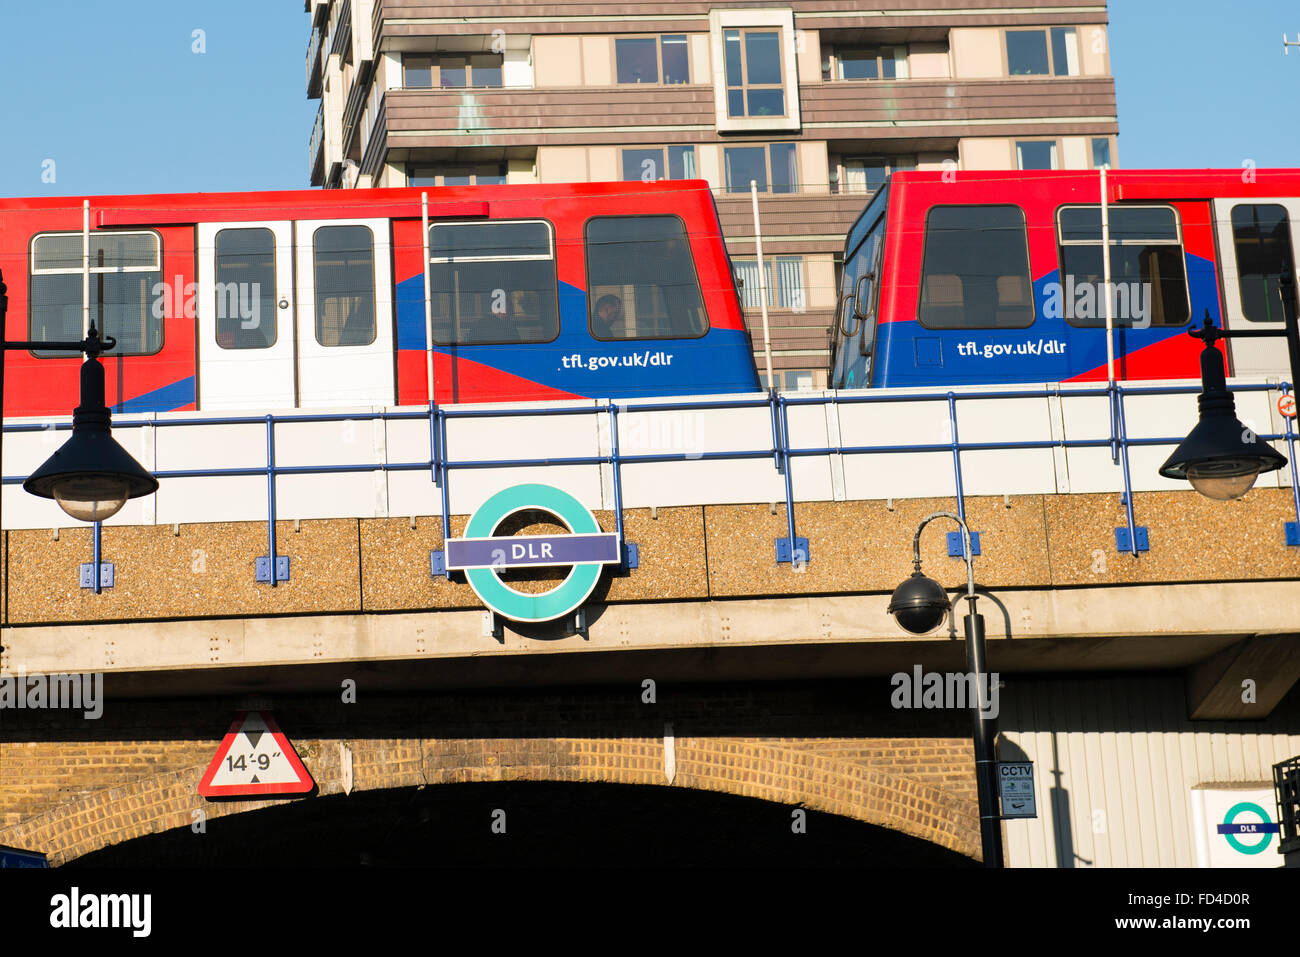 East End Wapping Shadwell DLR train bridge over road TFL Transport for London subway Metro Docklands Light Railway Stock Photo